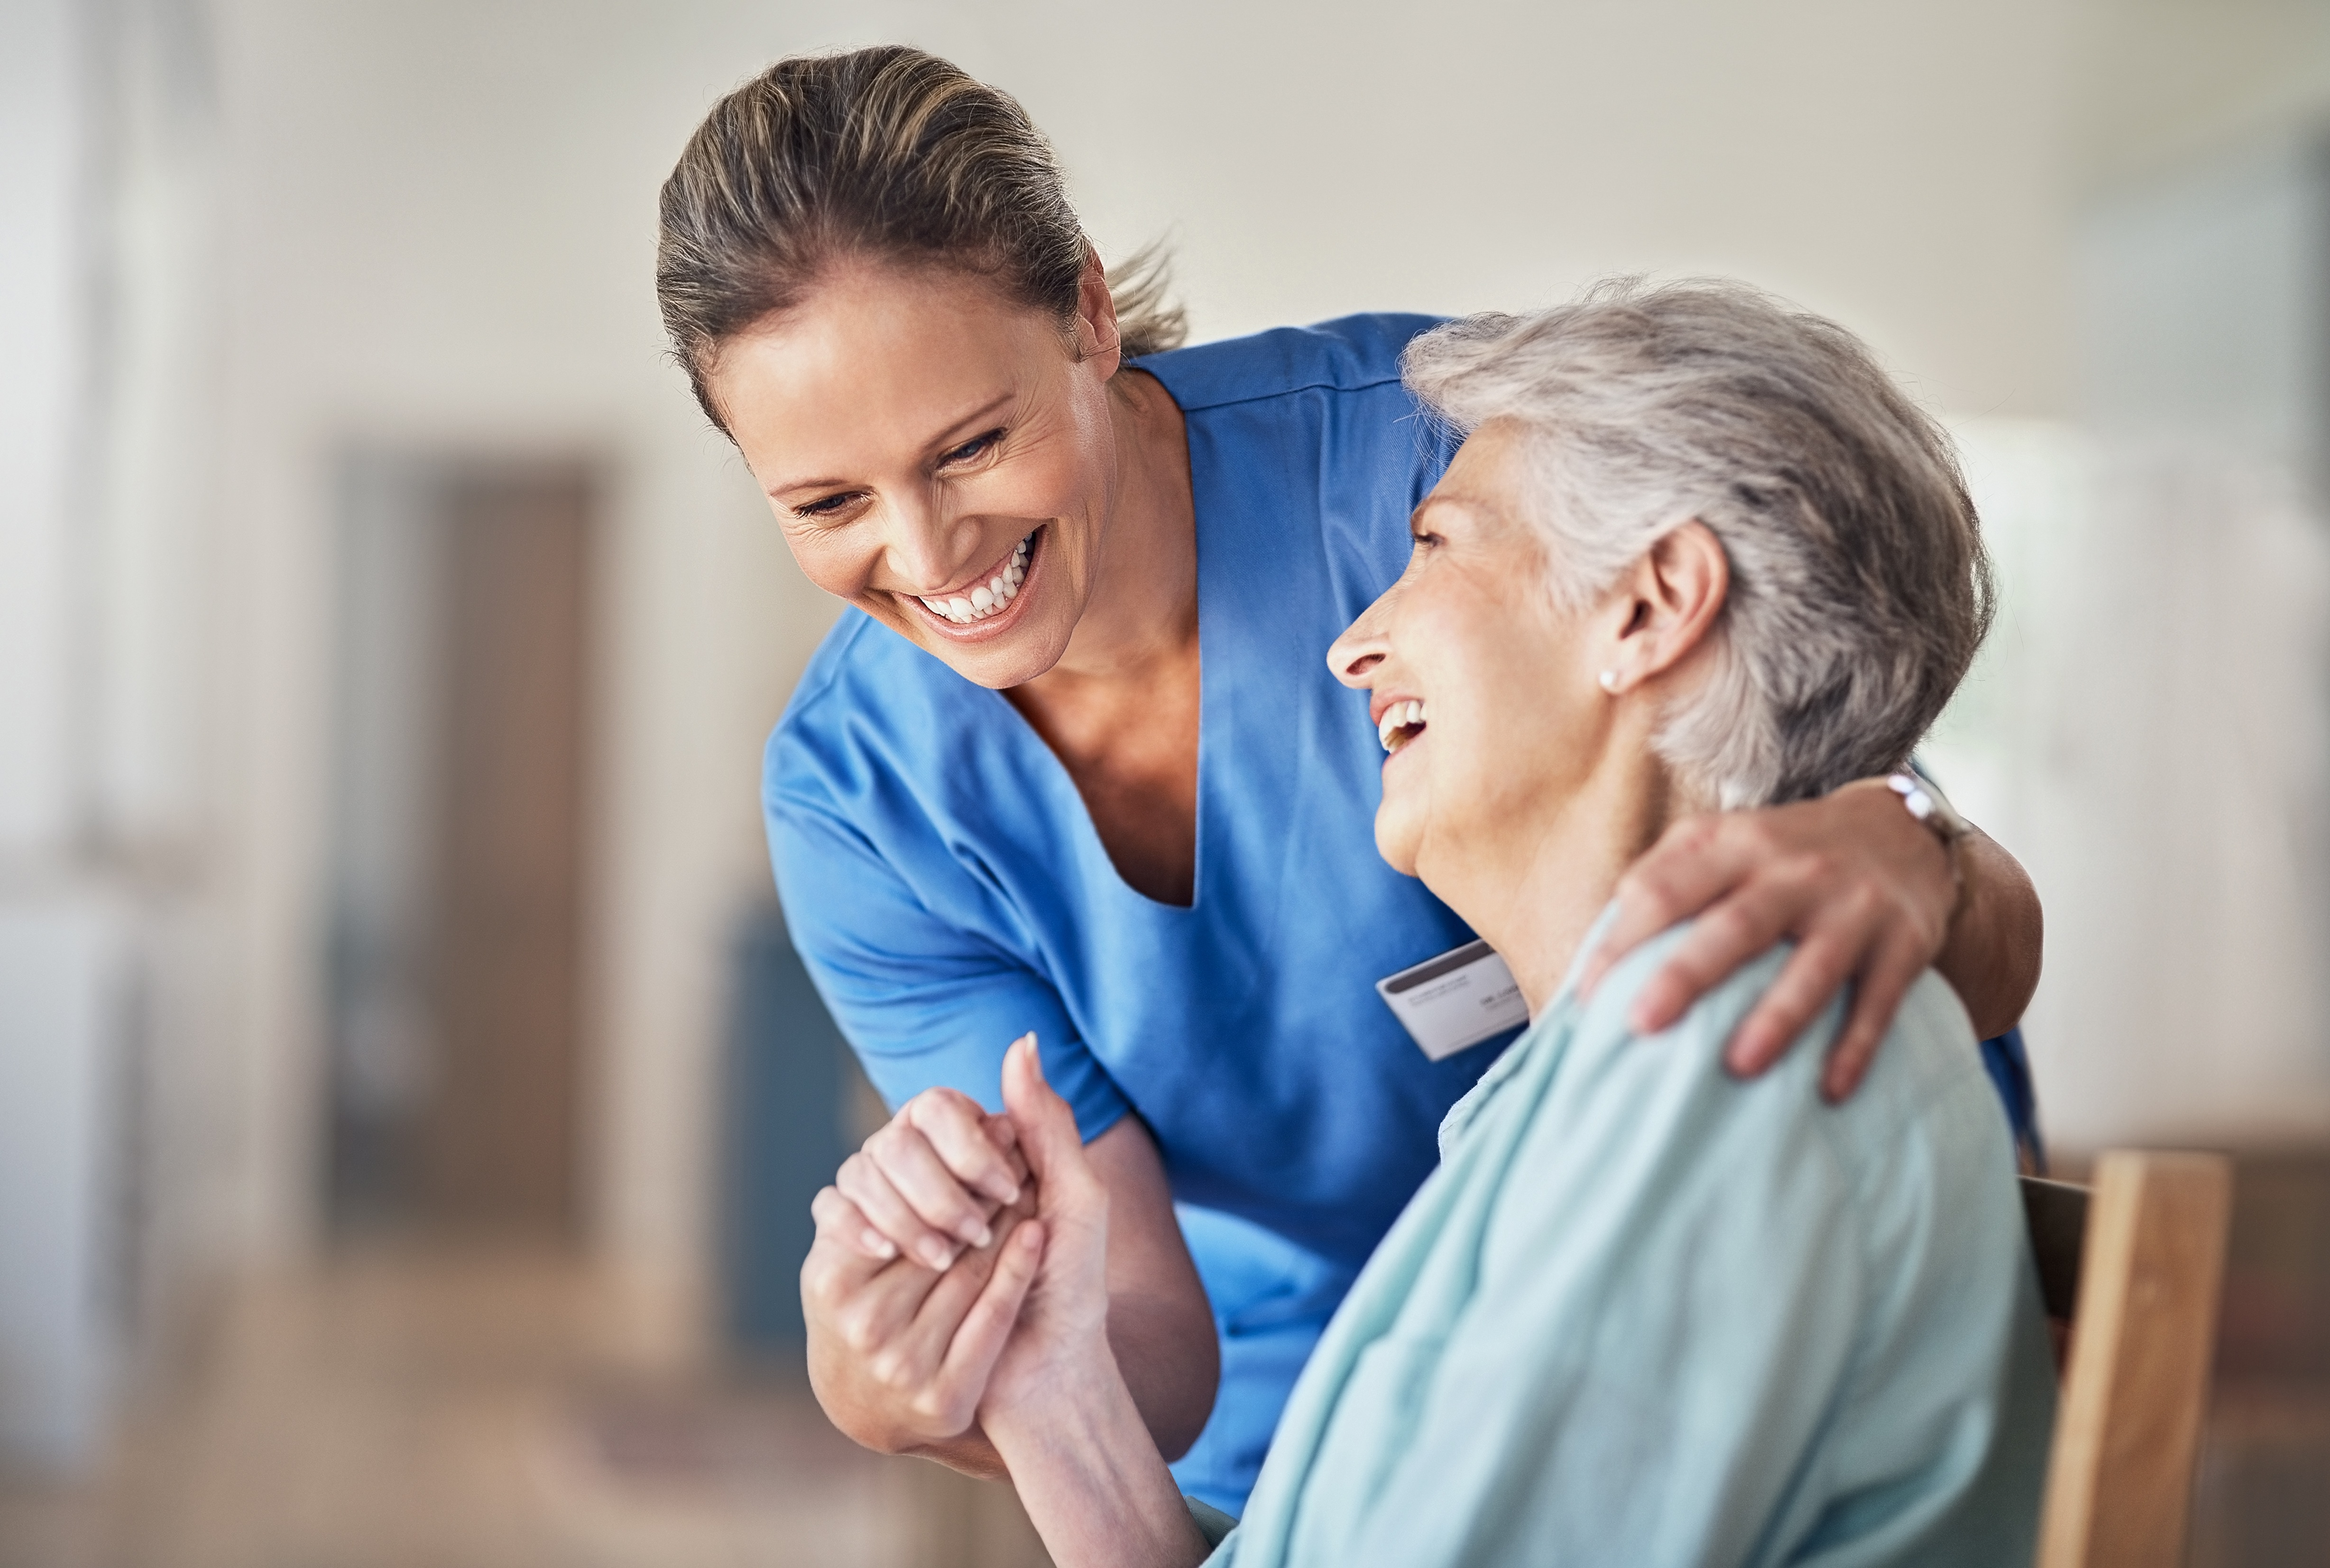 Patient satisfaction is important for the success of a practice